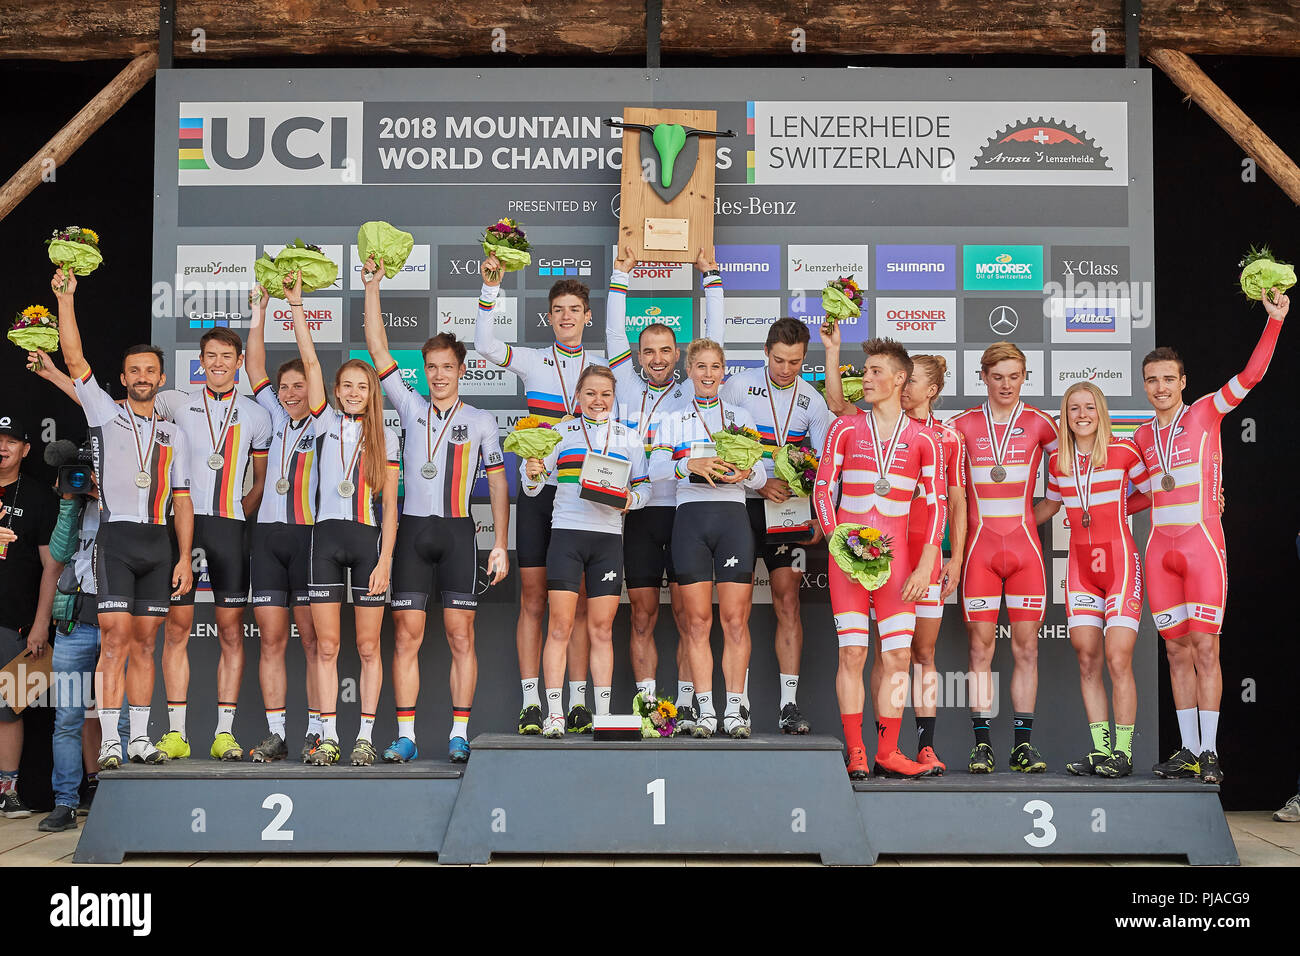 Lenzerheide, Switzerland. 5th September 2018. The Podium of the UCI 2018 Mountain Bike World Championships Cross Country Team Relay in Lenzerheide. Credit: Rolf Simeon/Alamy Live News - Stock Image